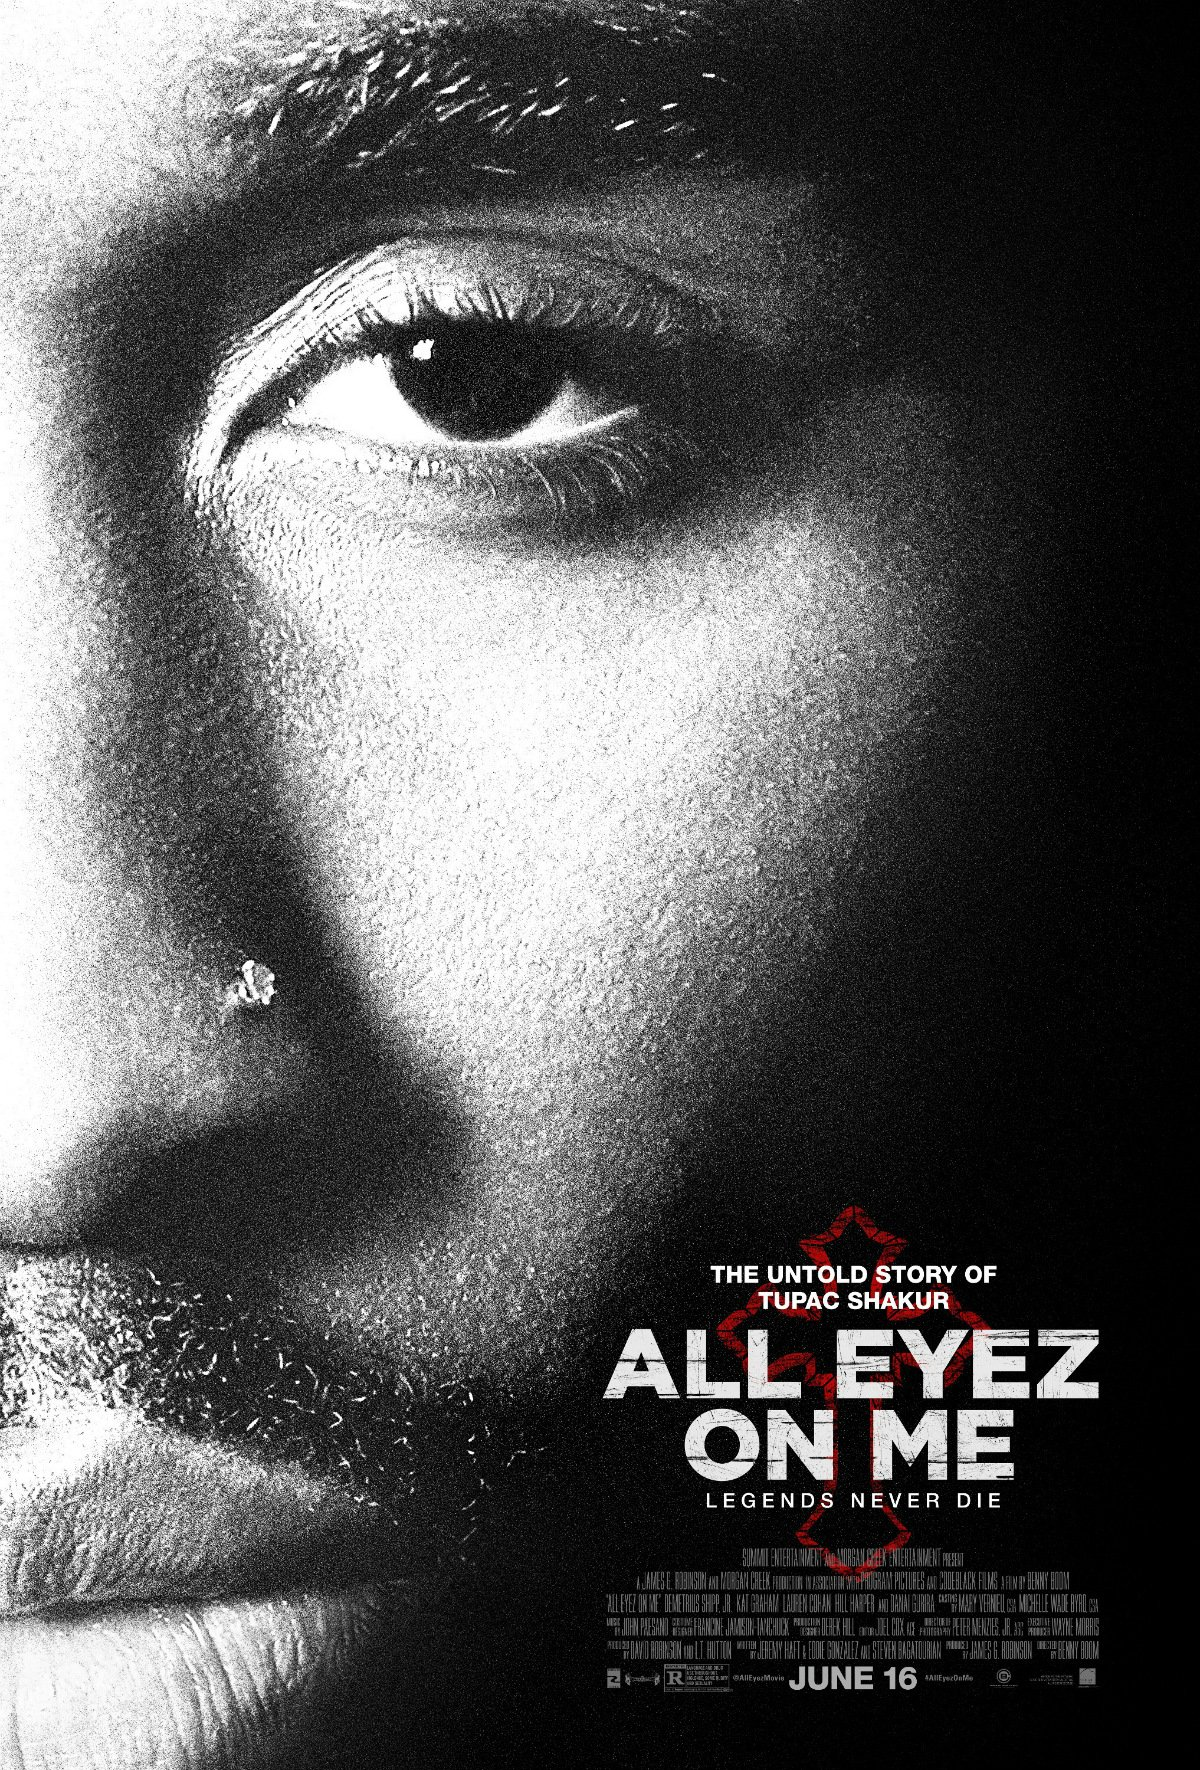 All Eyez On Me Trailer Sheds Light On The Life And Enduring Legacy Of Tupac Shakur